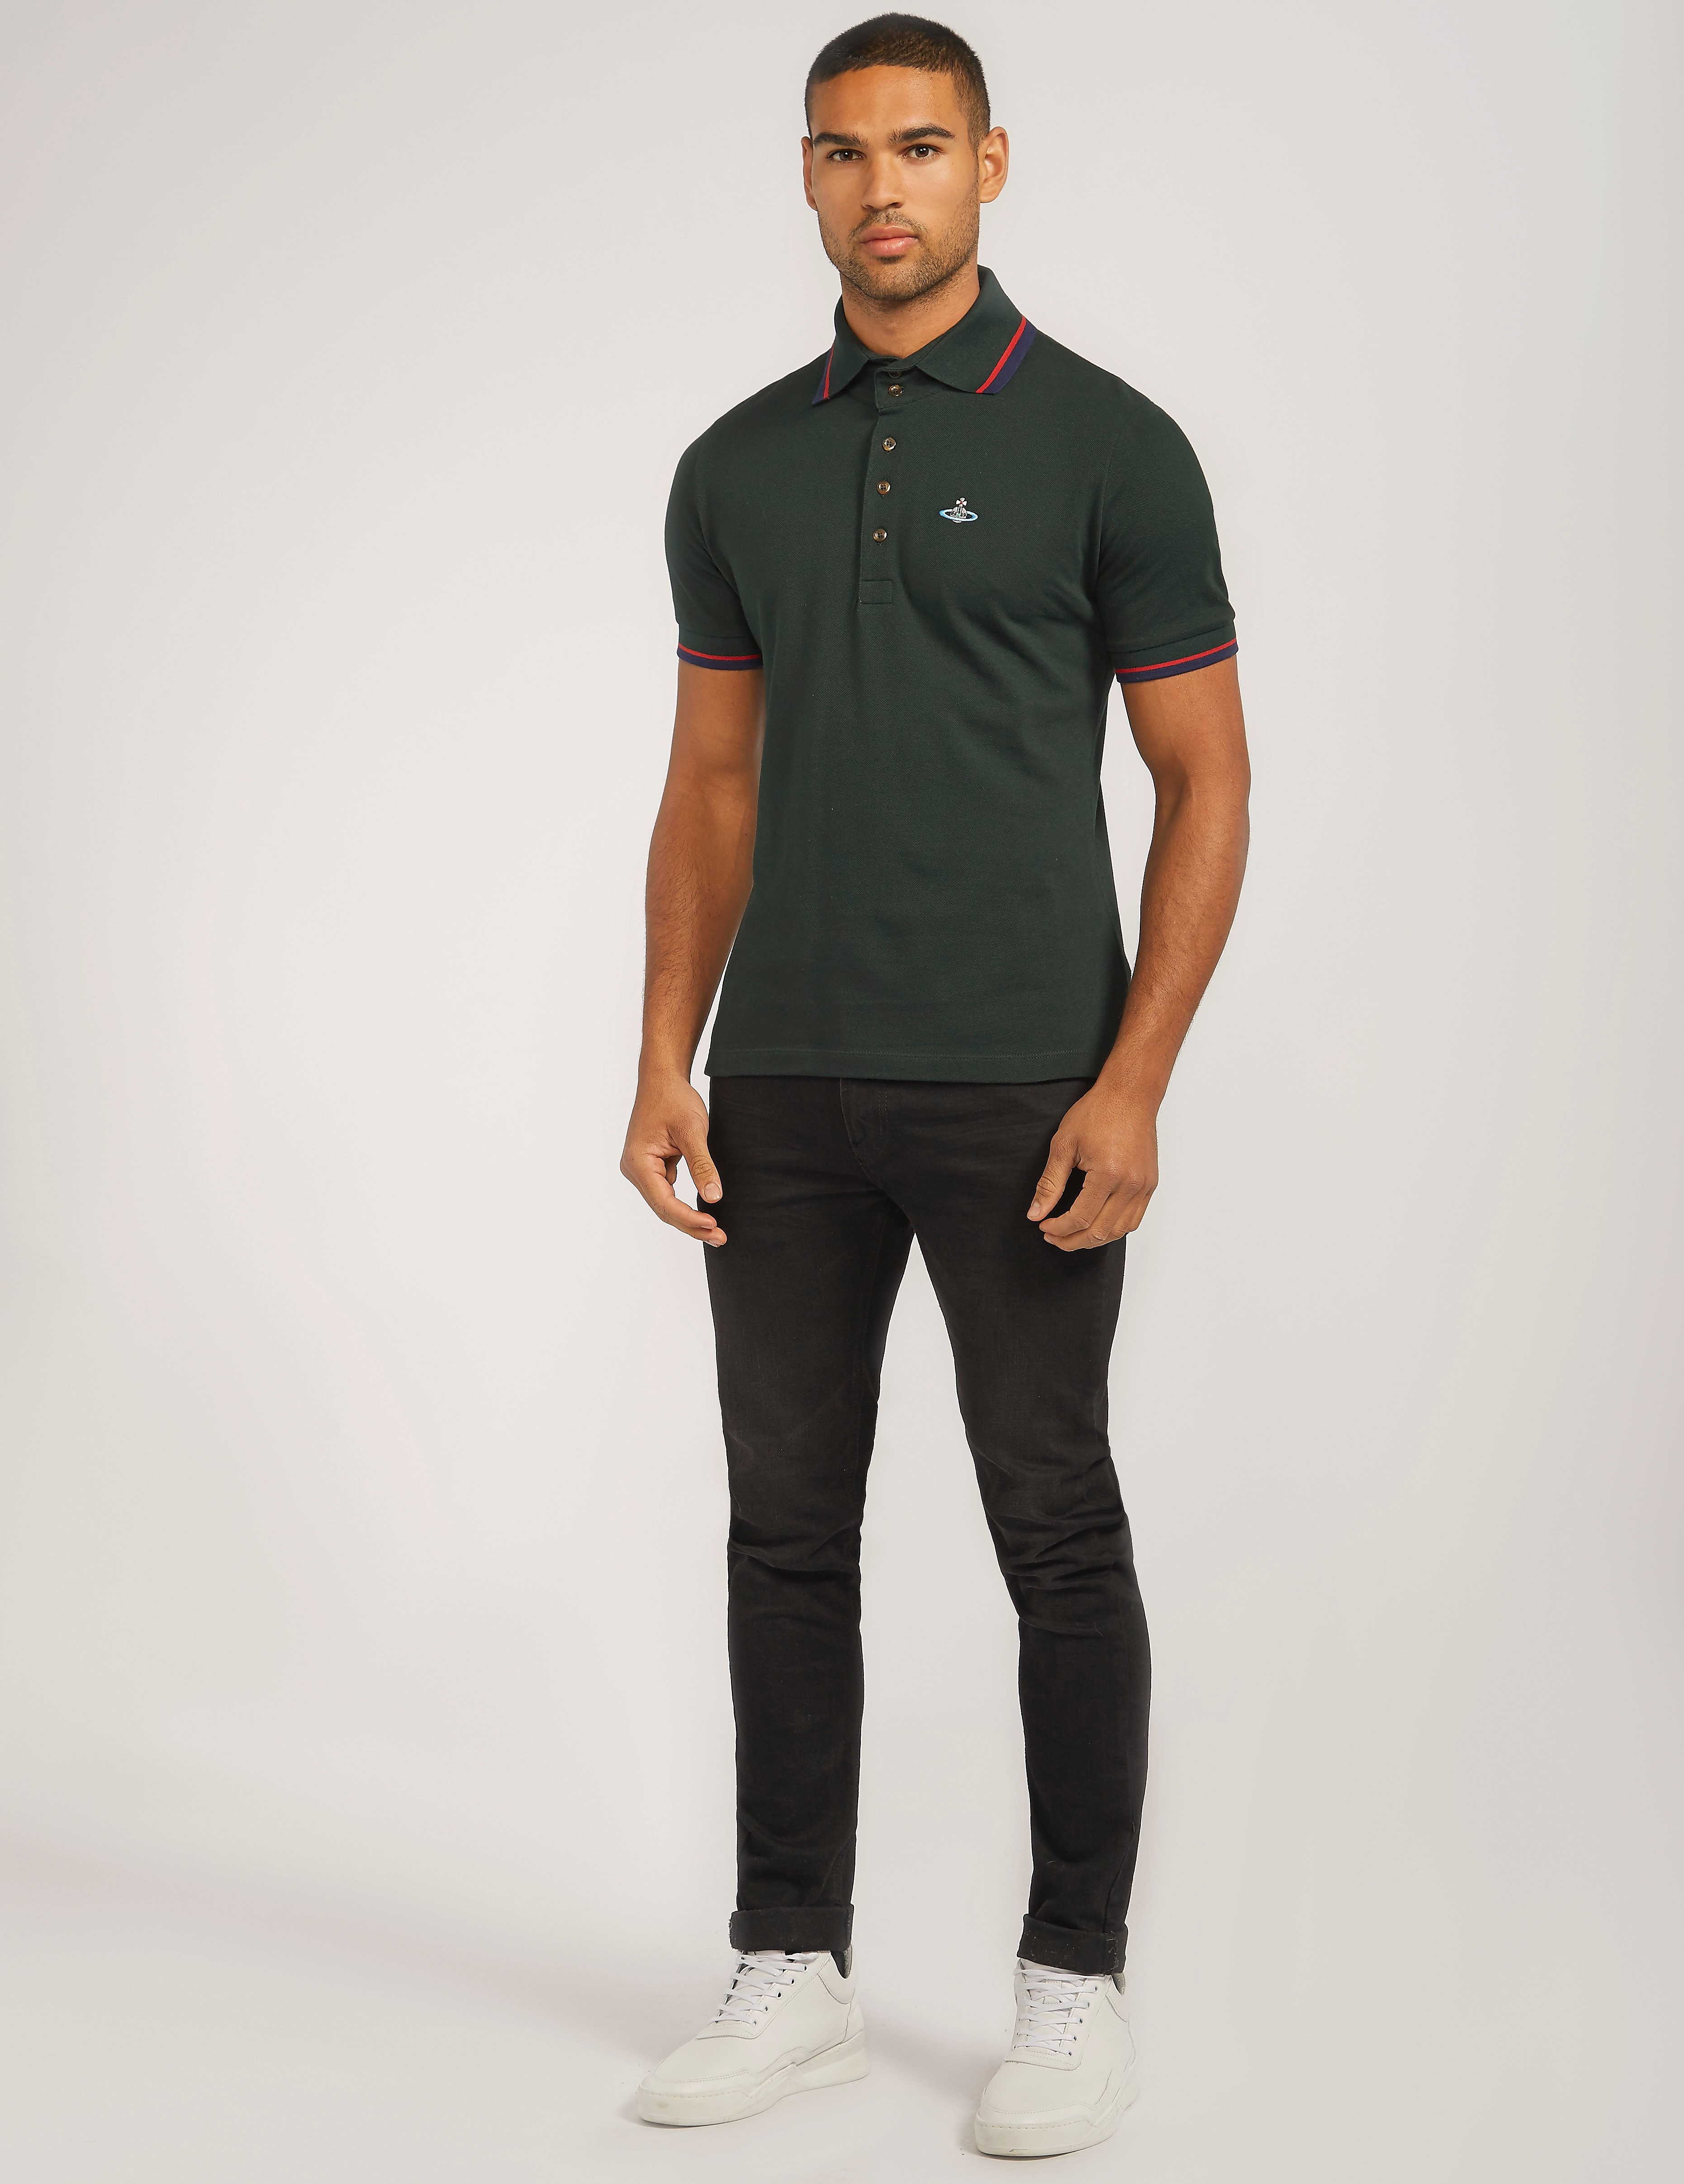 Vivienne Westwood Tipped Short Sleeve Polo Shirt